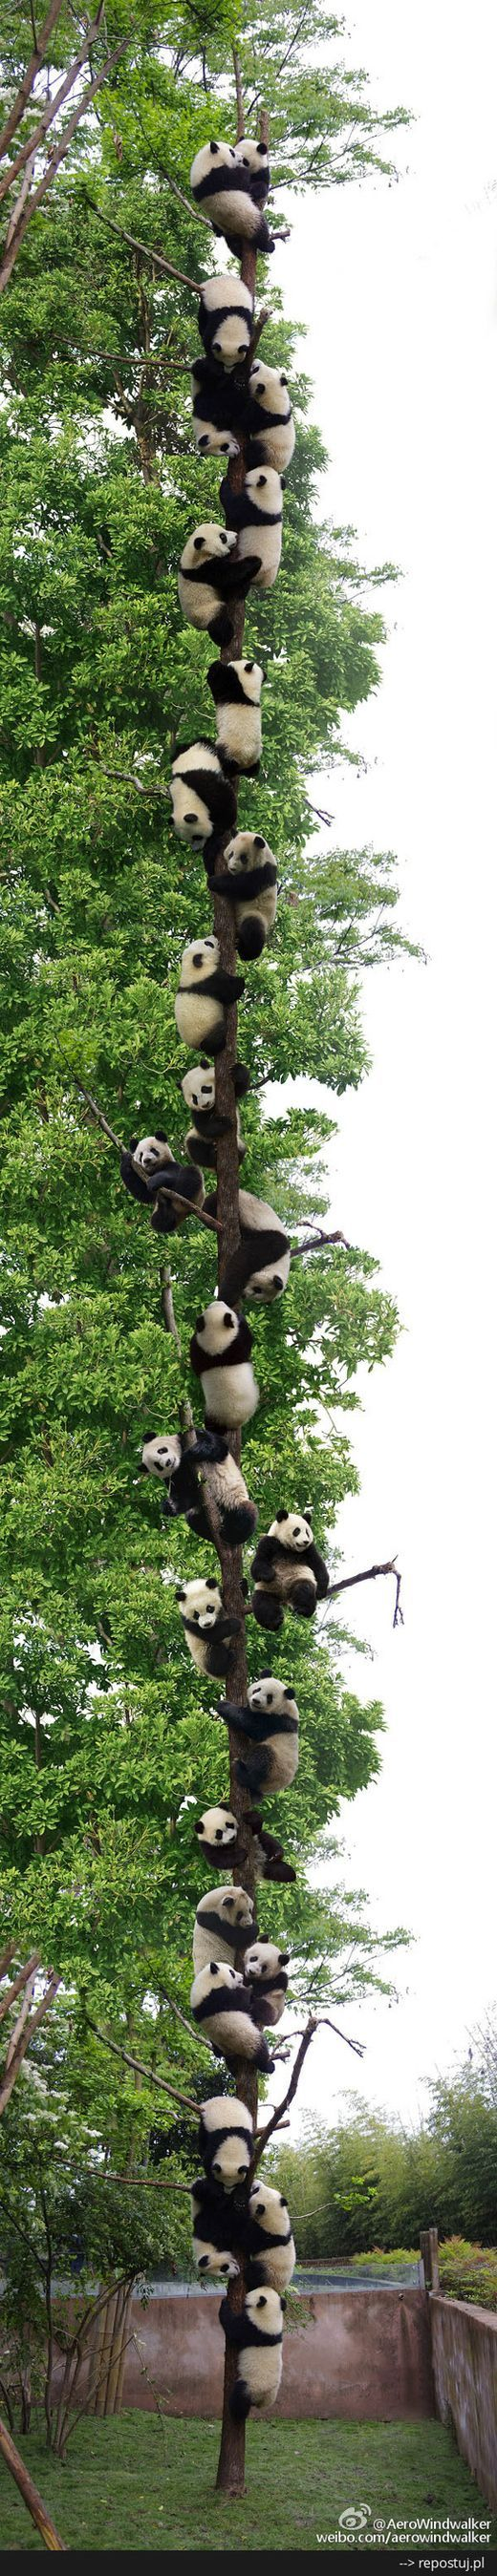 A tree full of pandas.